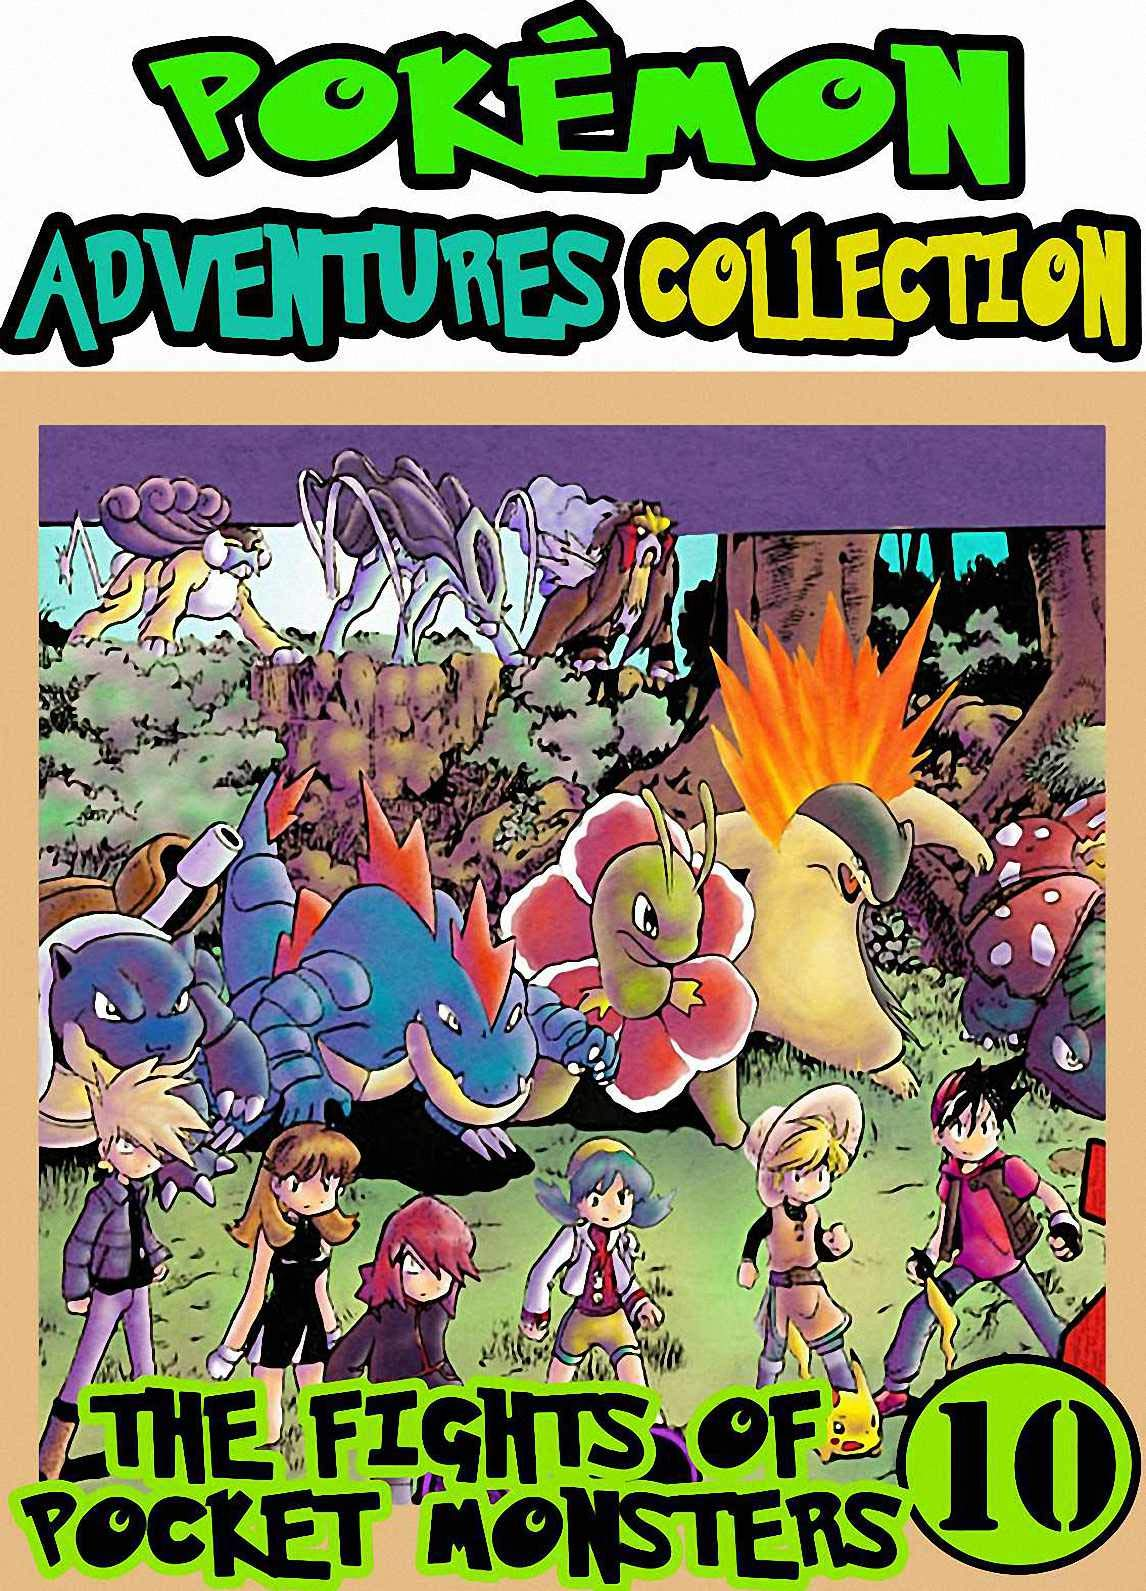 Pocket Fights: Collection 10 - Manga Pokemon Collection Adventures Graphic Novel For Boys, Girls, Kids